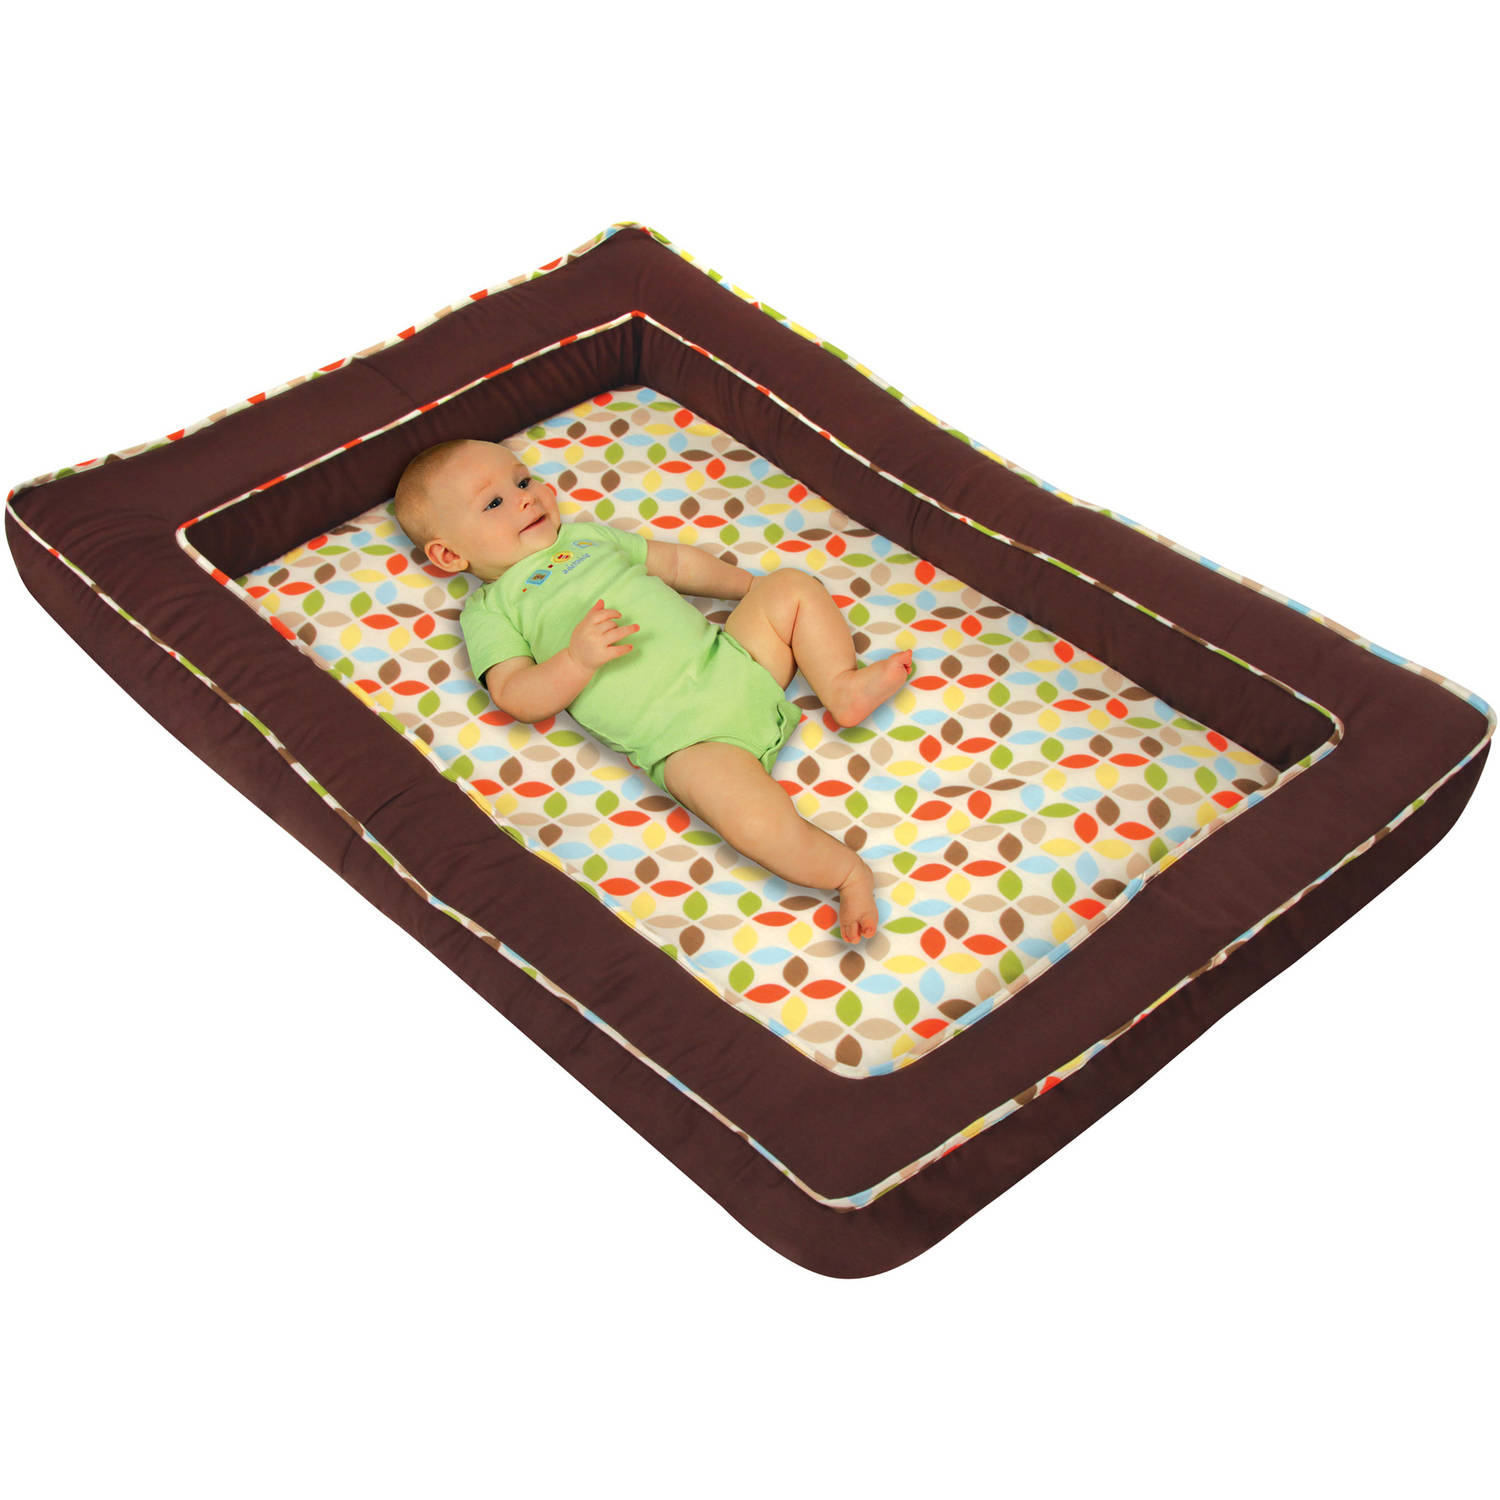 Leachco Mozy Mini Travel Bed, Brown Twill and Leaf Cluster Multi